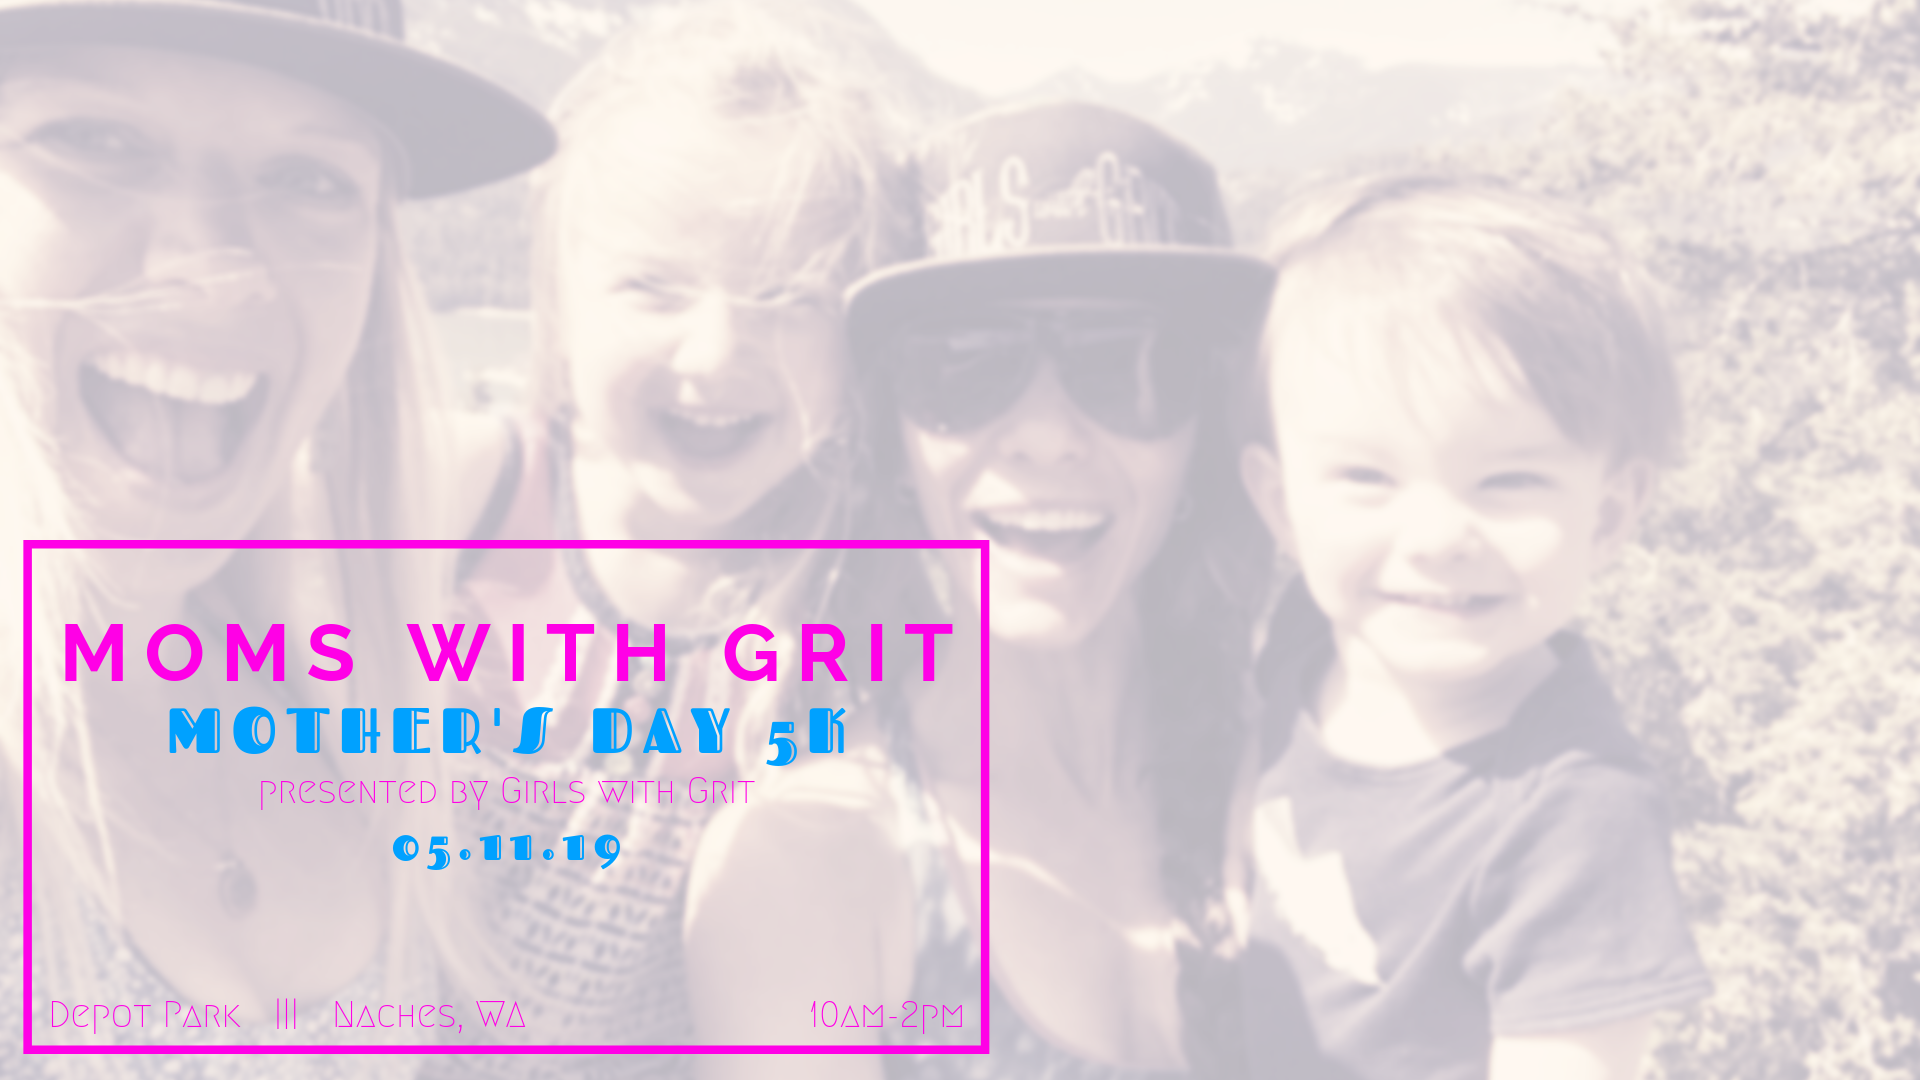 Register for the 2019 Mom's with Grit Mother's Day Weekend 5K